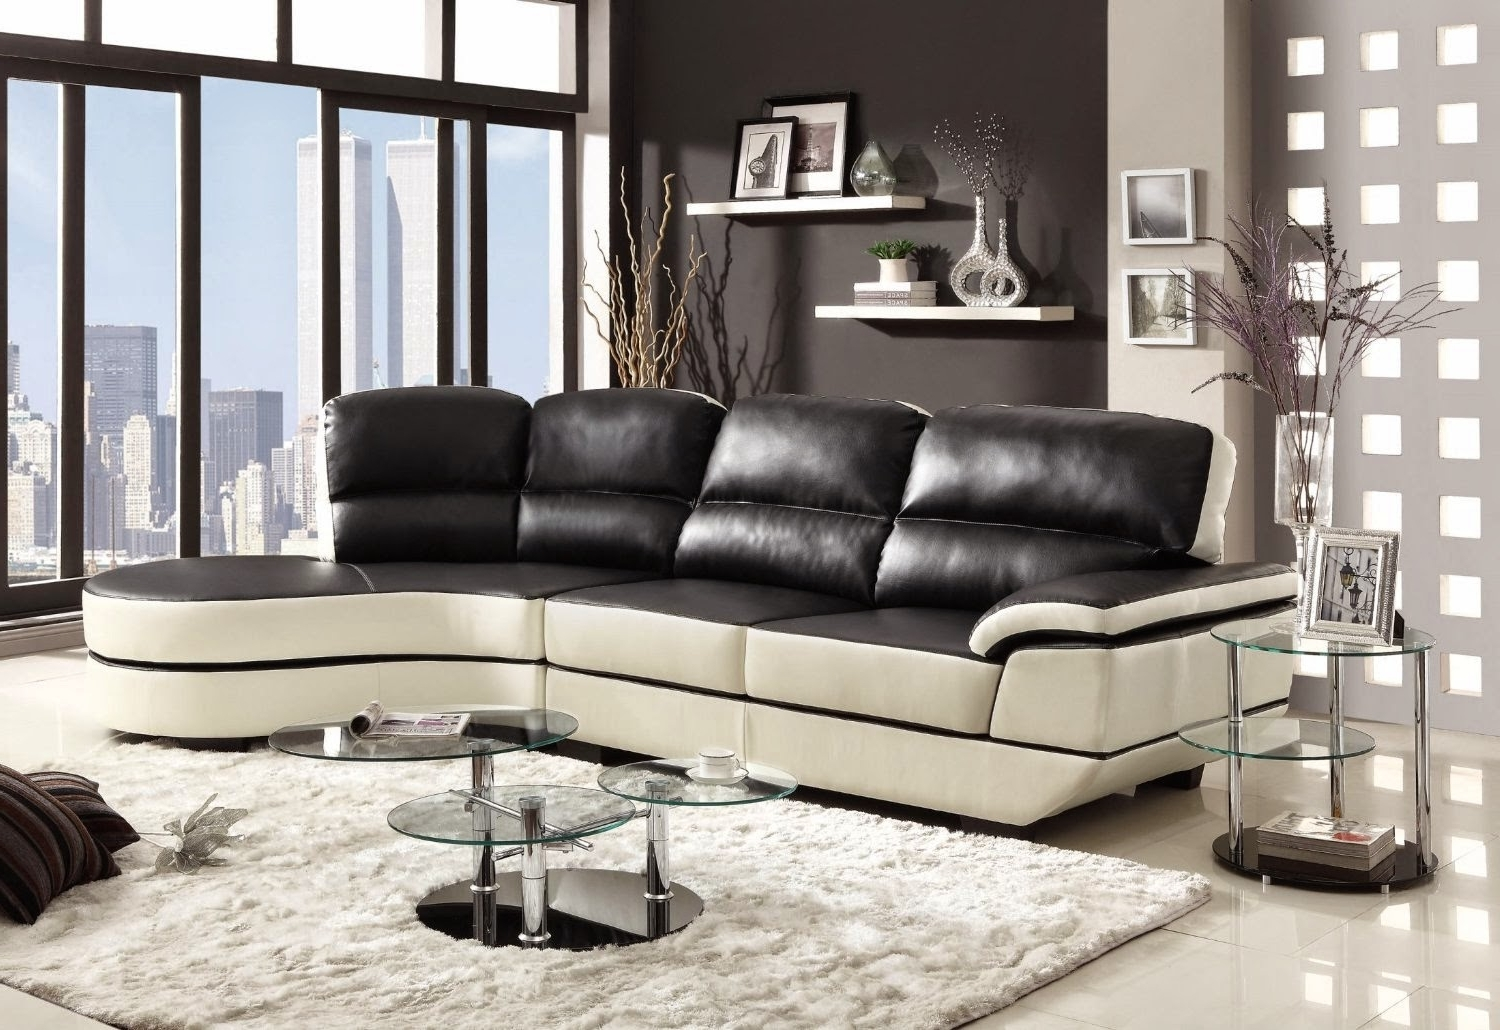 Furniture : Sectional Sofa Ebay Corner Couch 6 Seater 4 Recliner Regarding Latest 100X80 Sectional Sofas (View 5 of 15)